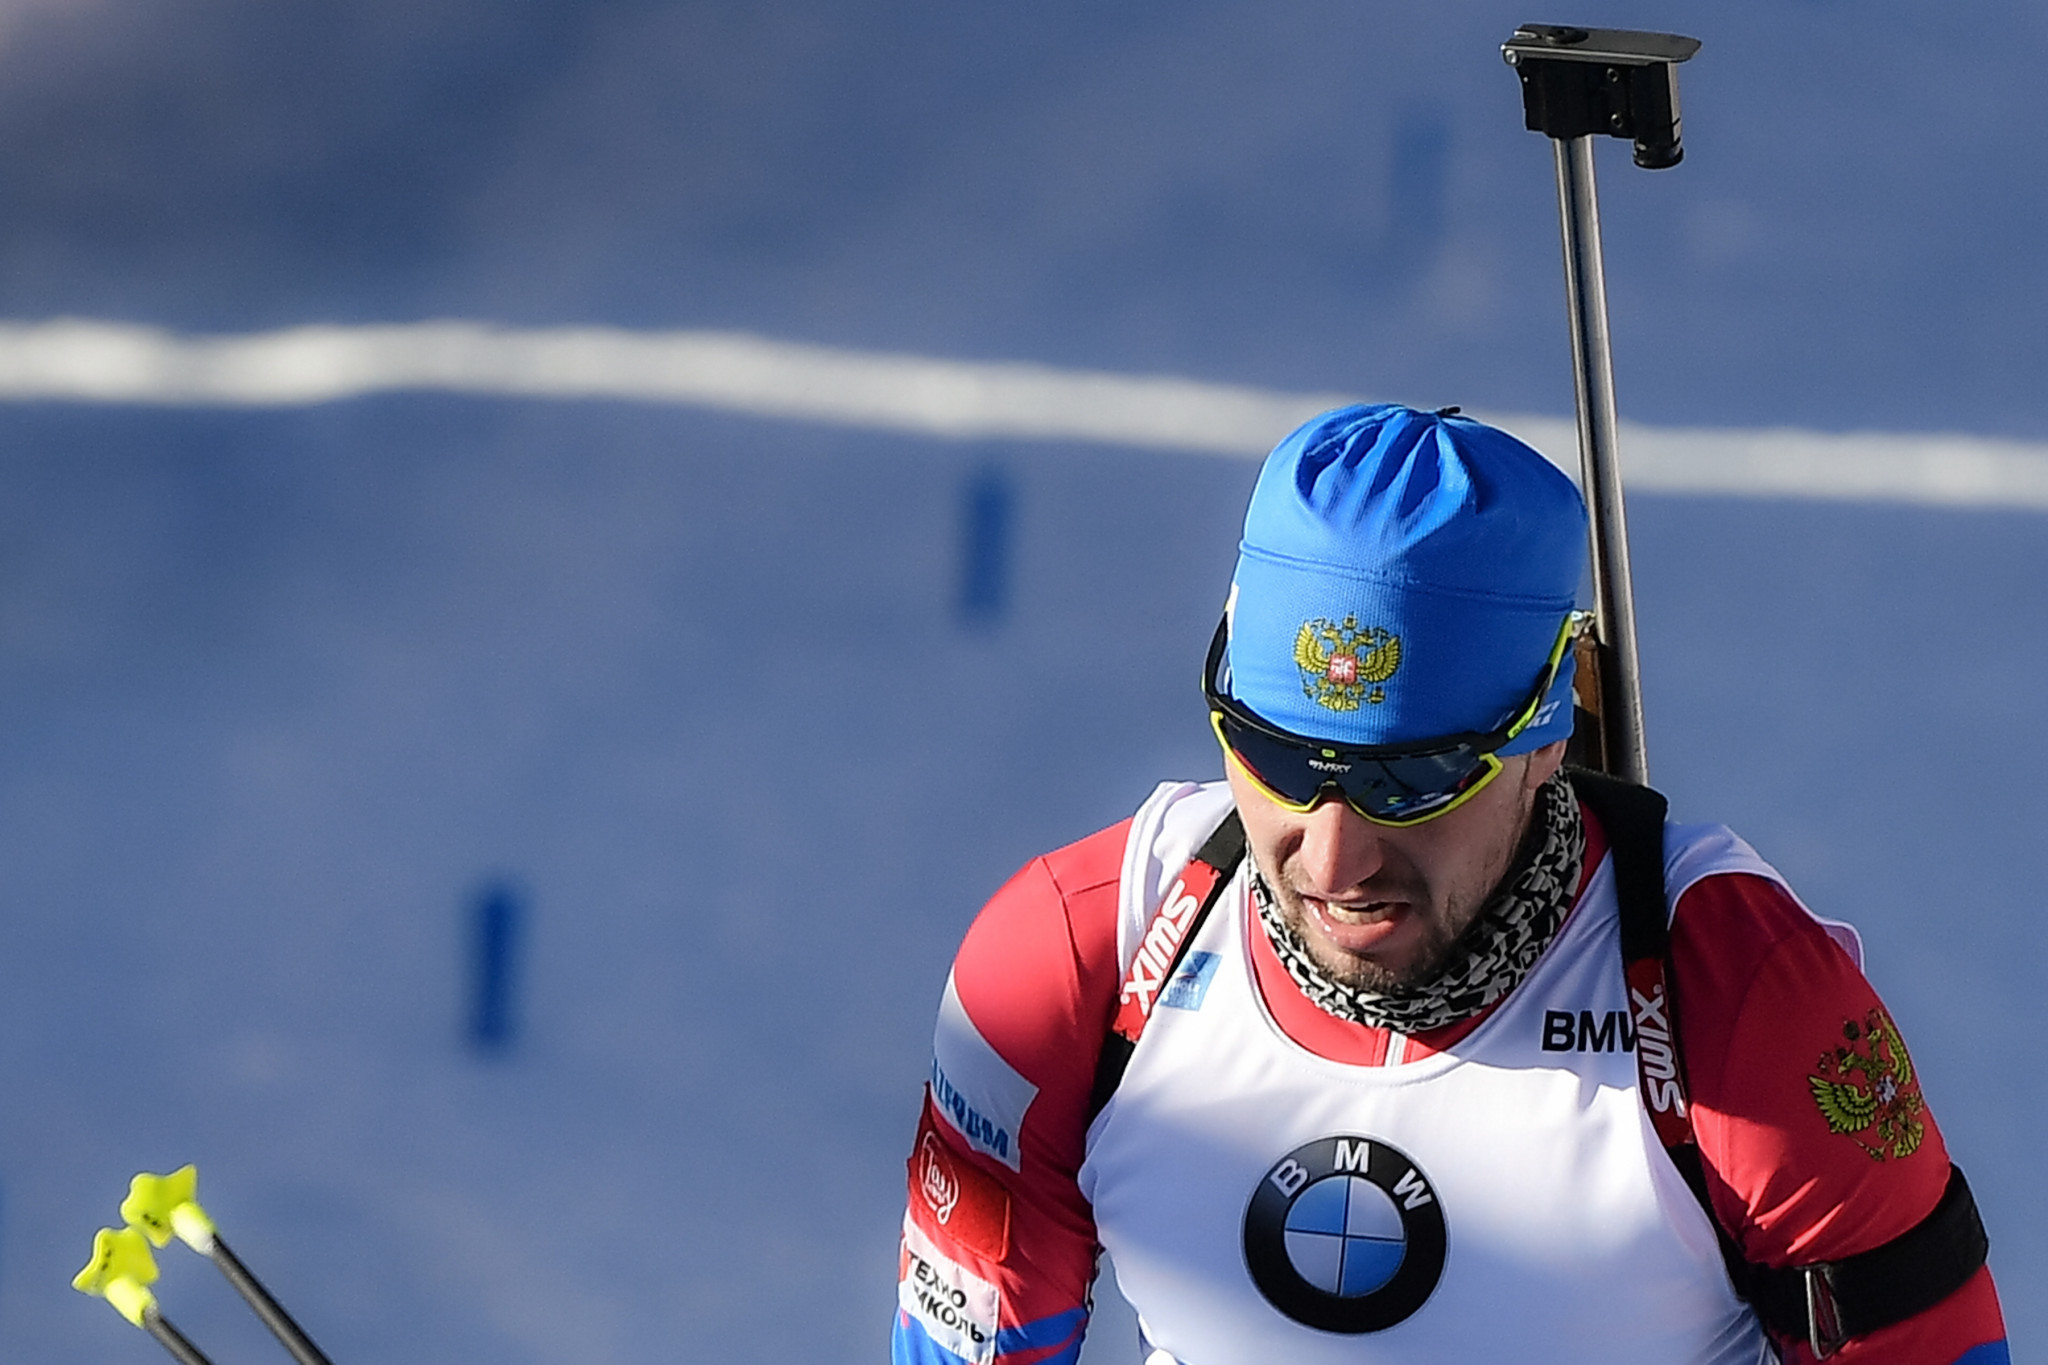 Alexander Loginov's hotel room was searched by Italian police during the Biathlon World Championships ©Getty Images